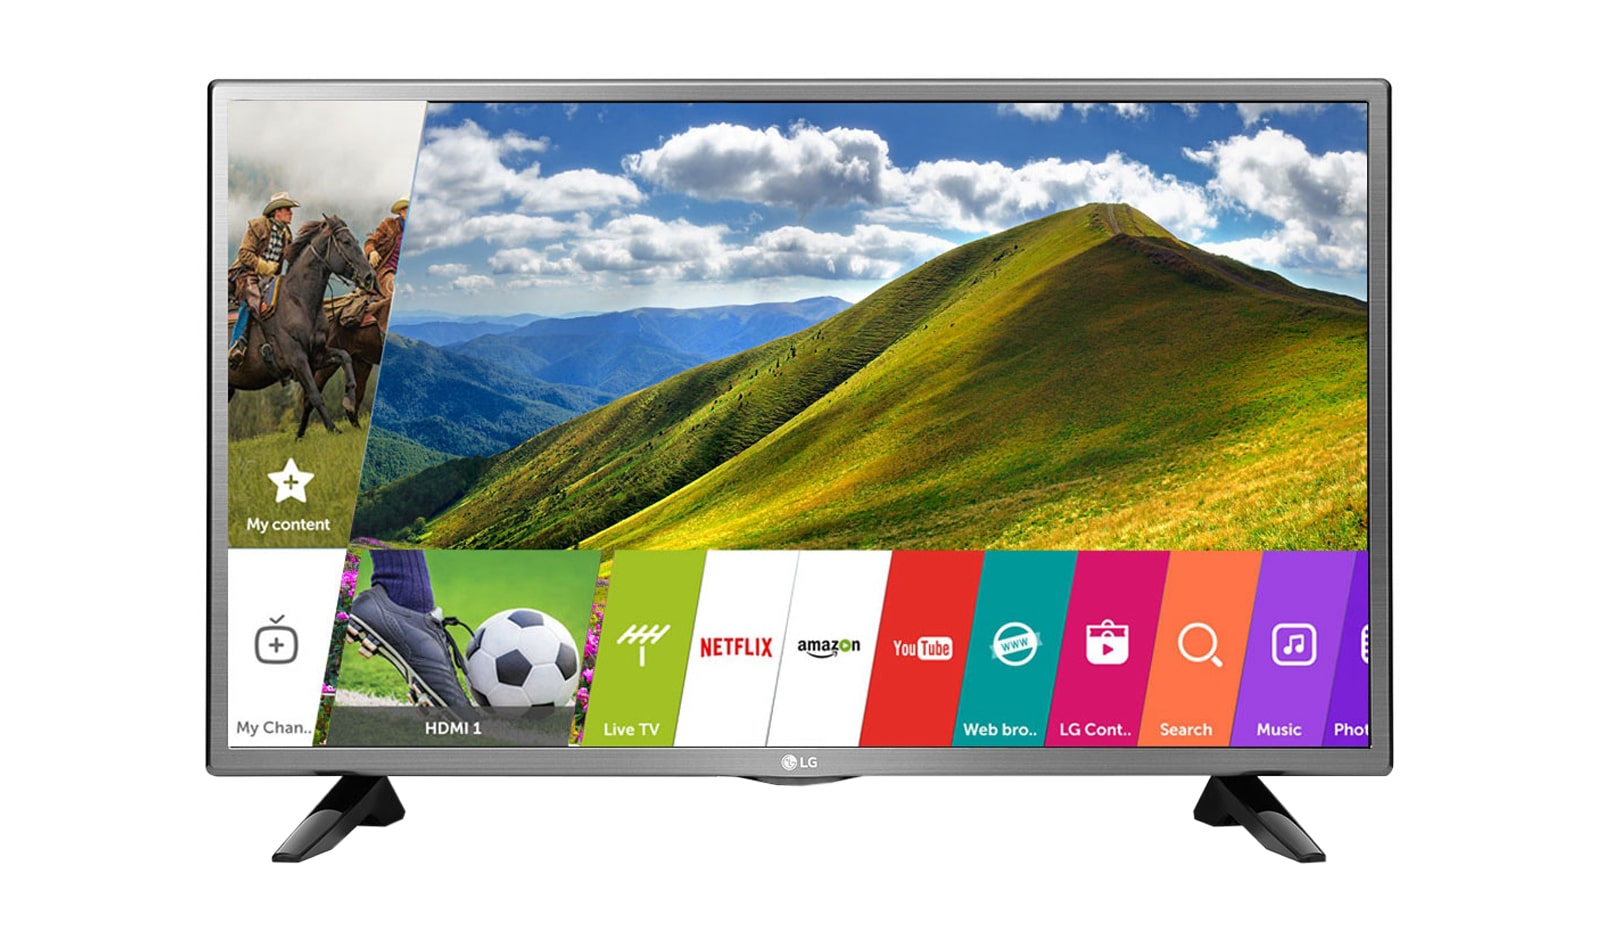 lg ultra hd 4k led smart ips tv 55 inches 55uj632t online at best prices in india shop. Black Bedroom Furniture Sets. Home Design Ideas